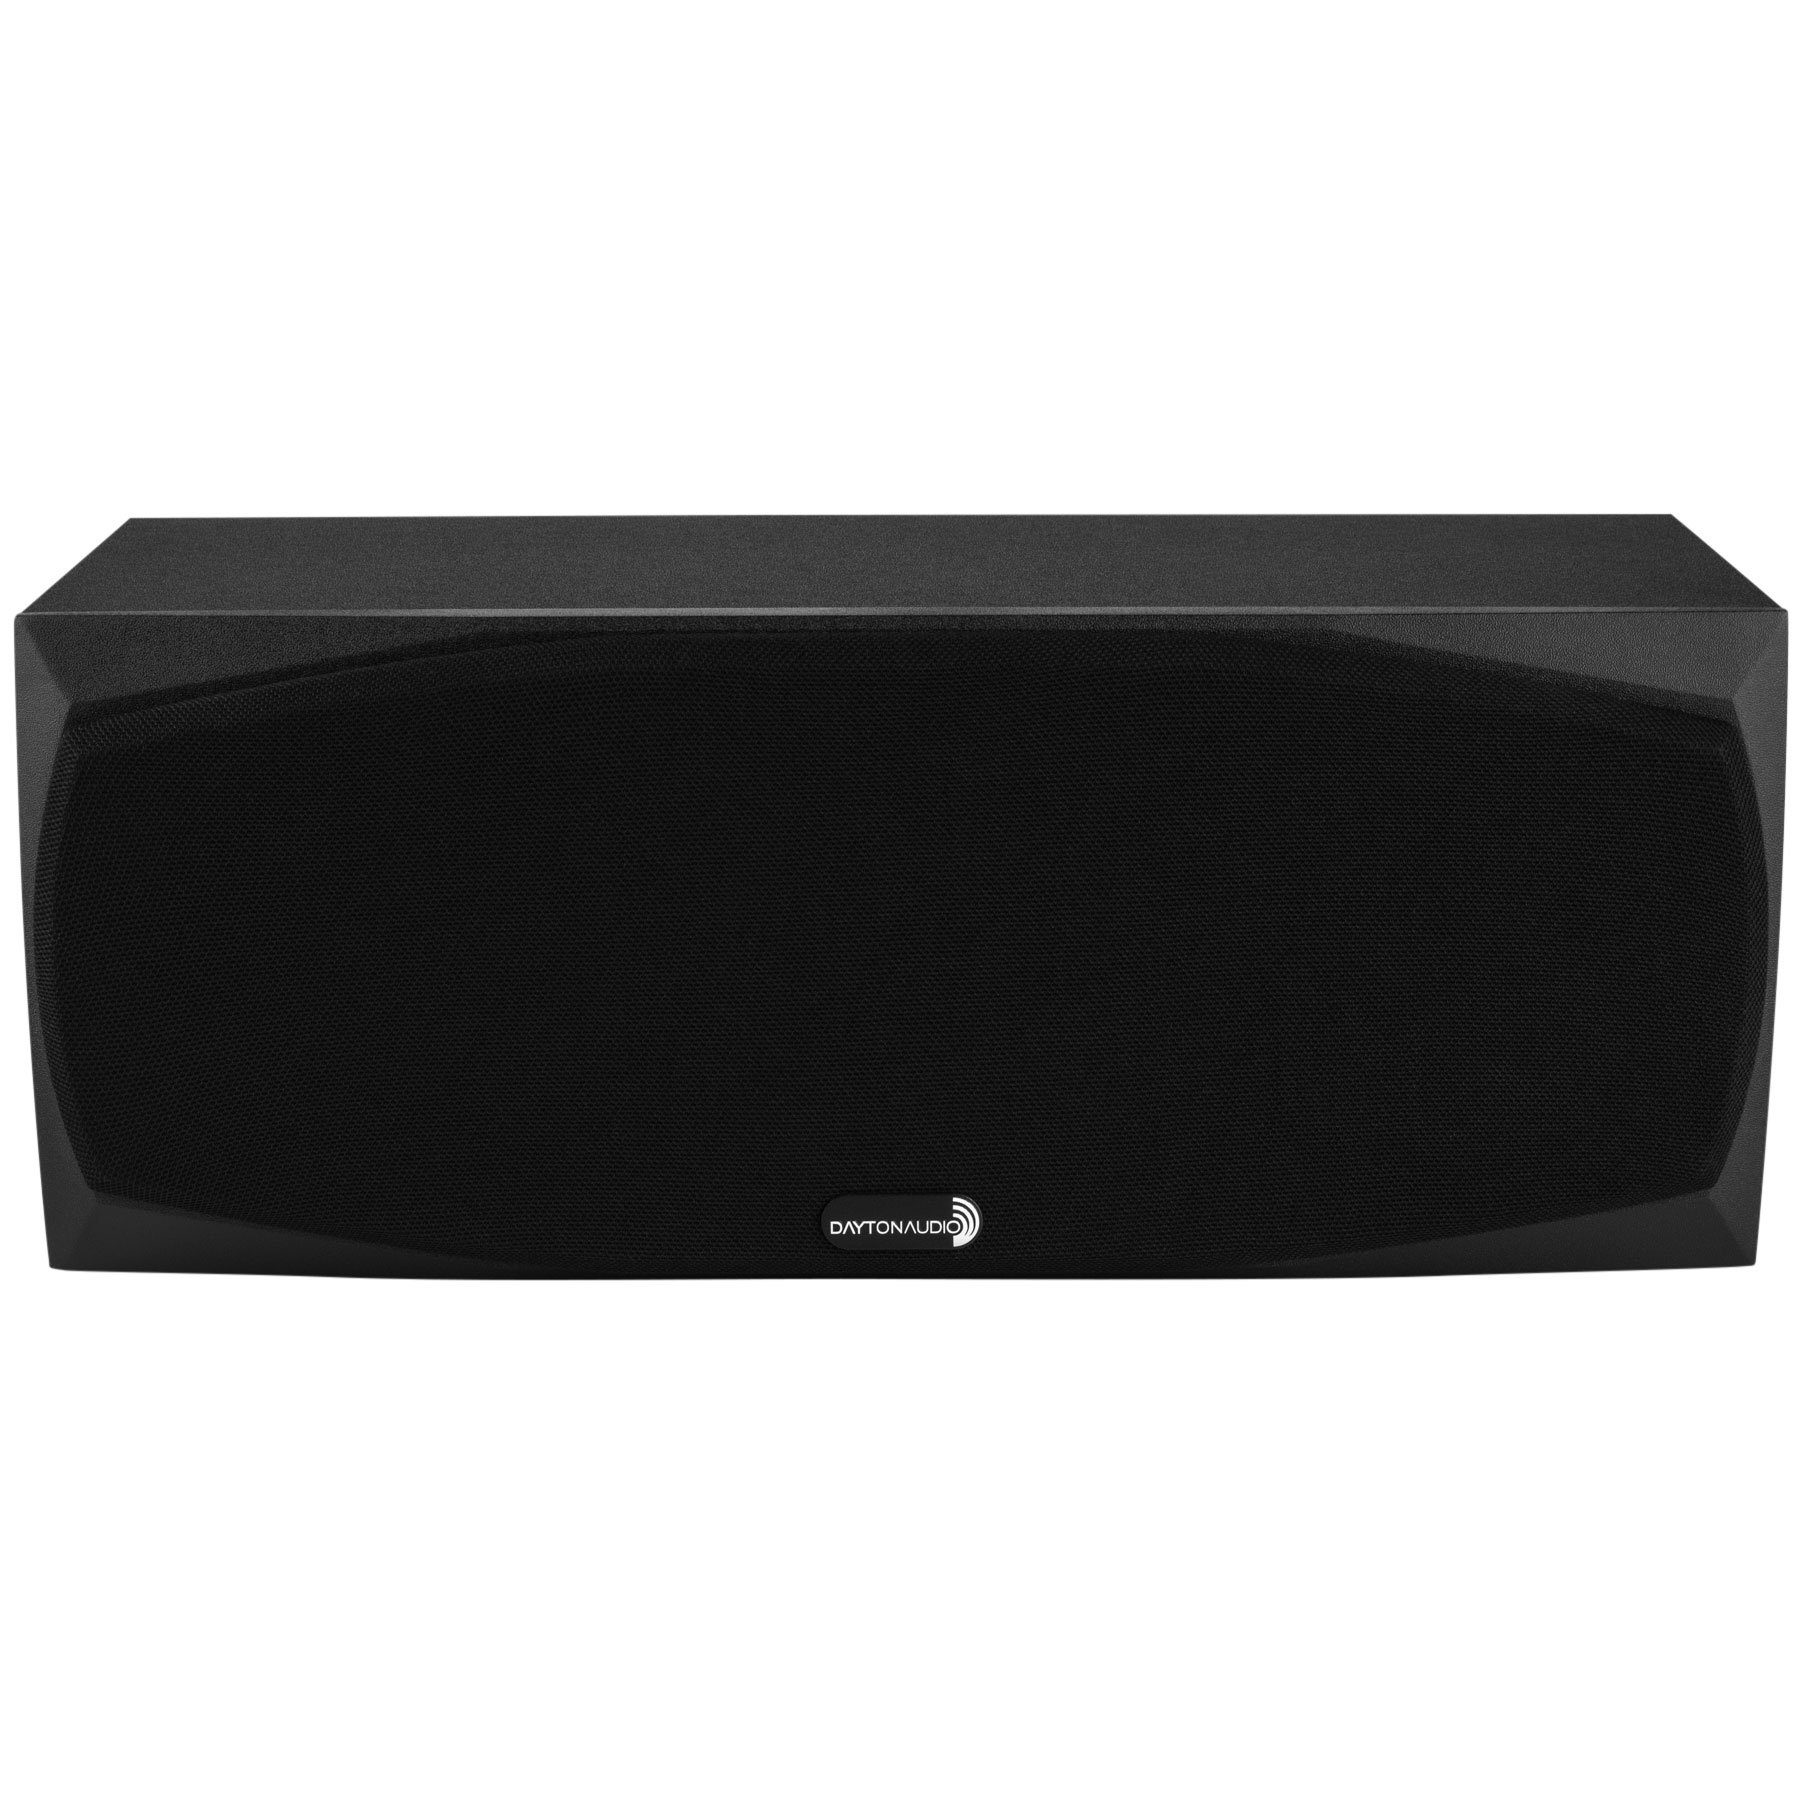 Dayton Audio MK442 Dual 4'' 2-Way Center Channel Speaker by Dayton Audio